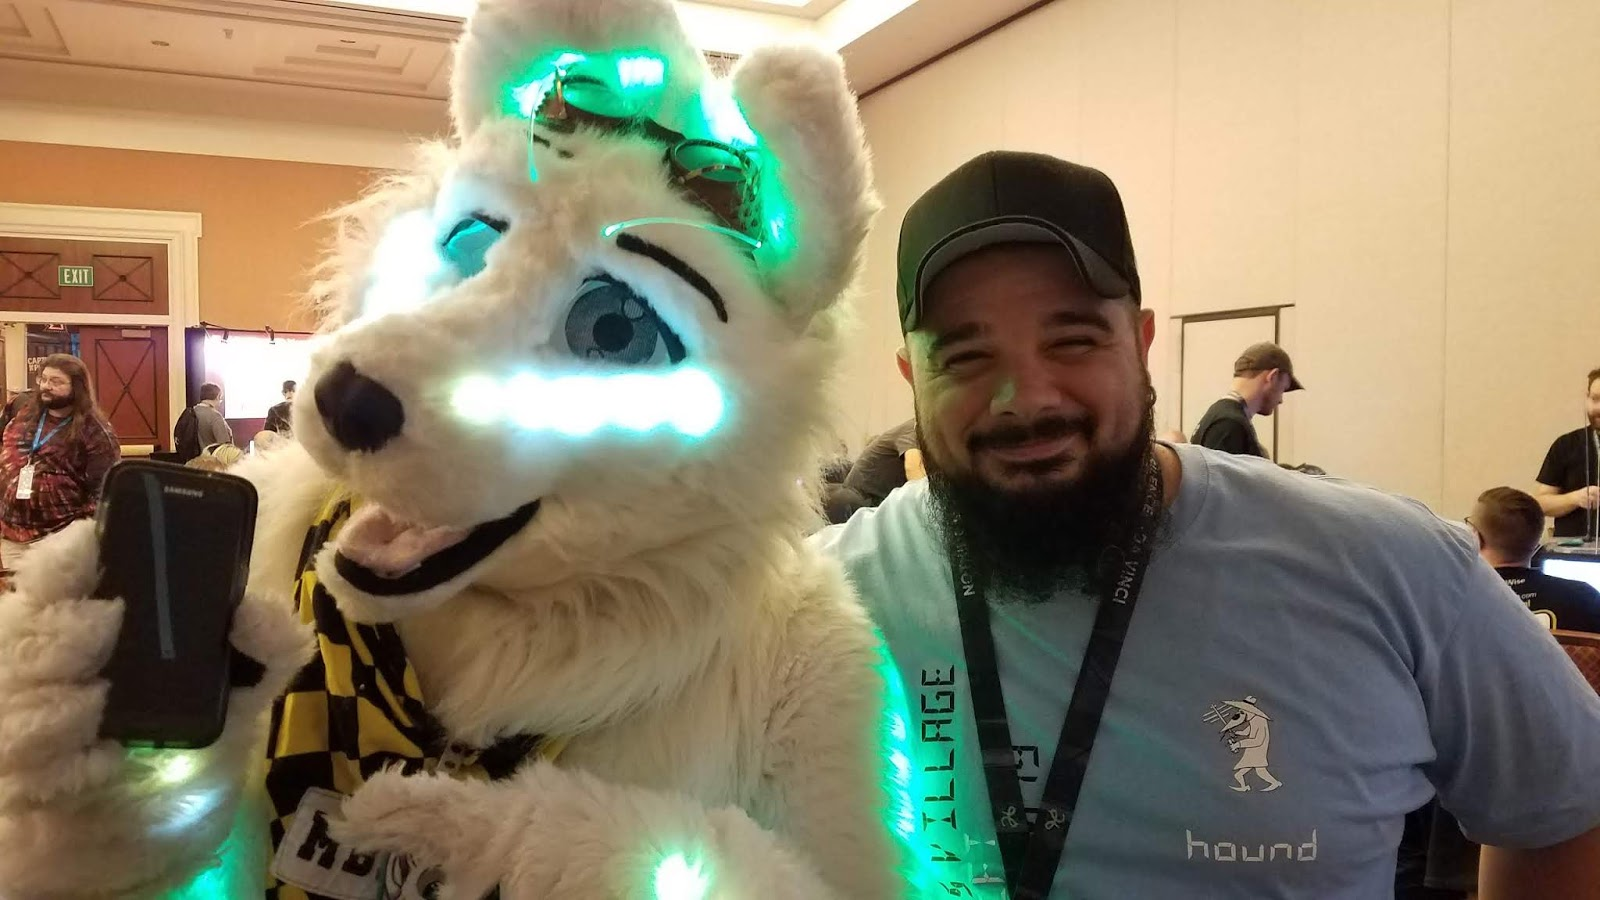 mBlade (@mBlade_akita) posing with our teammate Wasabi